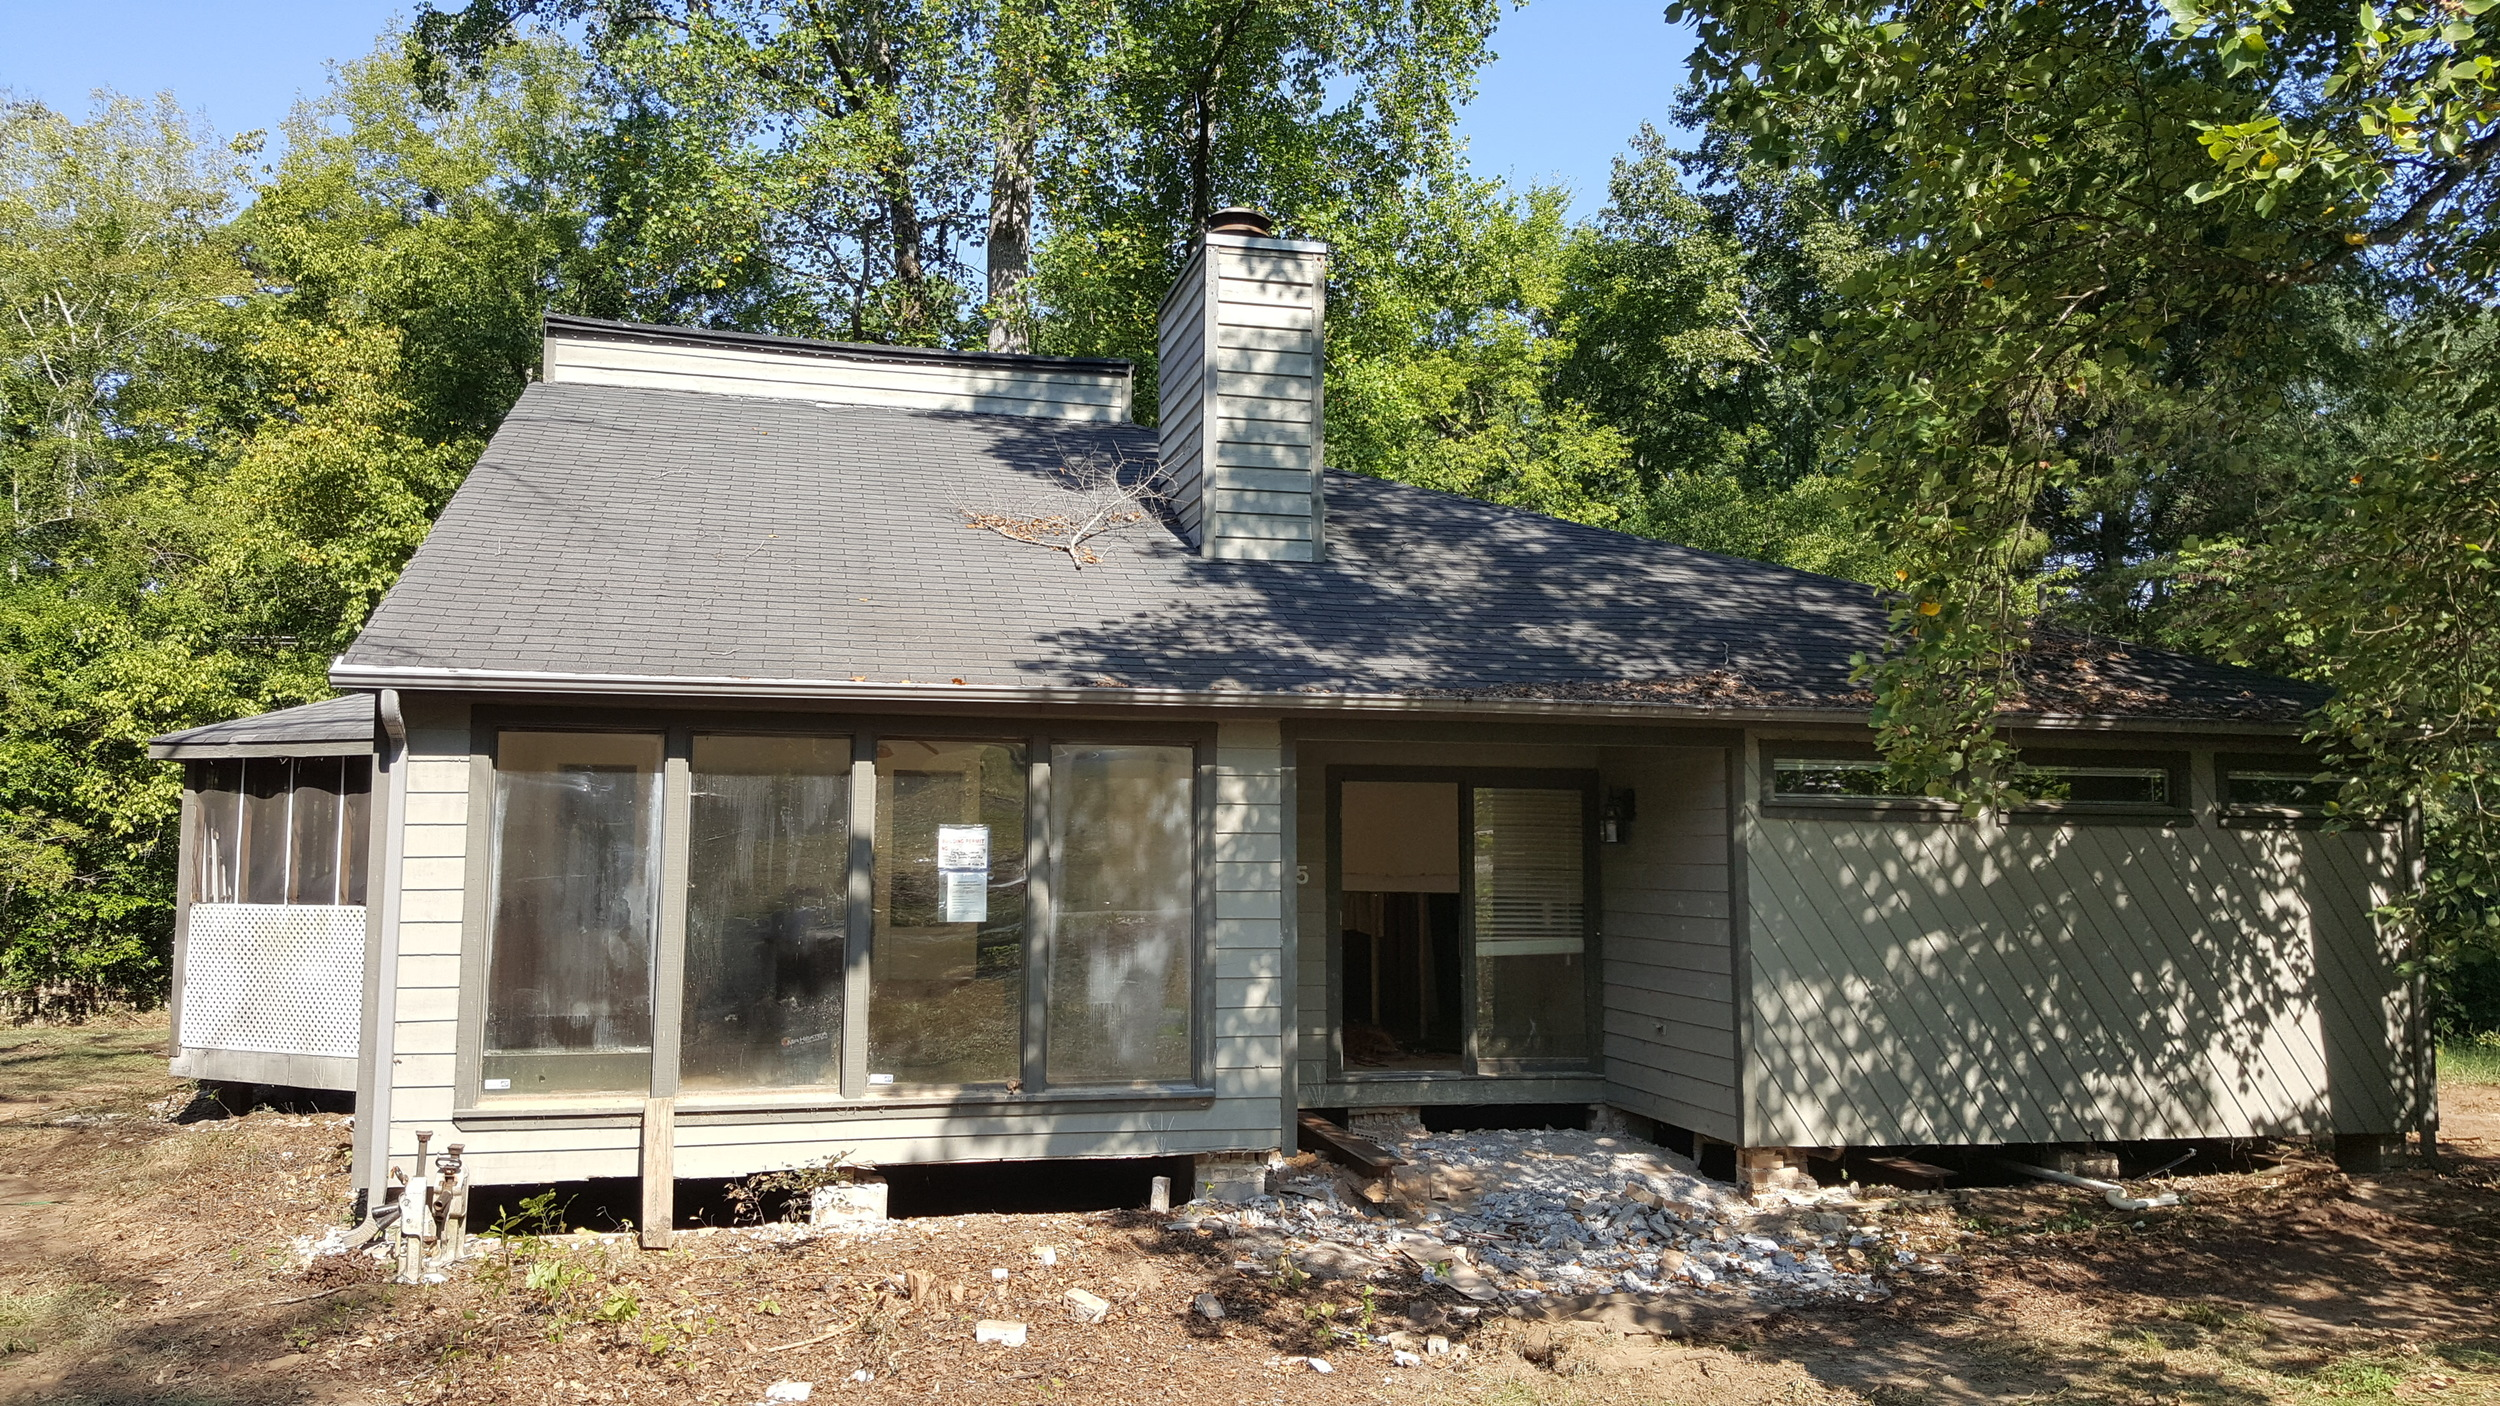 This home in Irmo was affected by the flood and needed to be raised to meet new flood regulations.